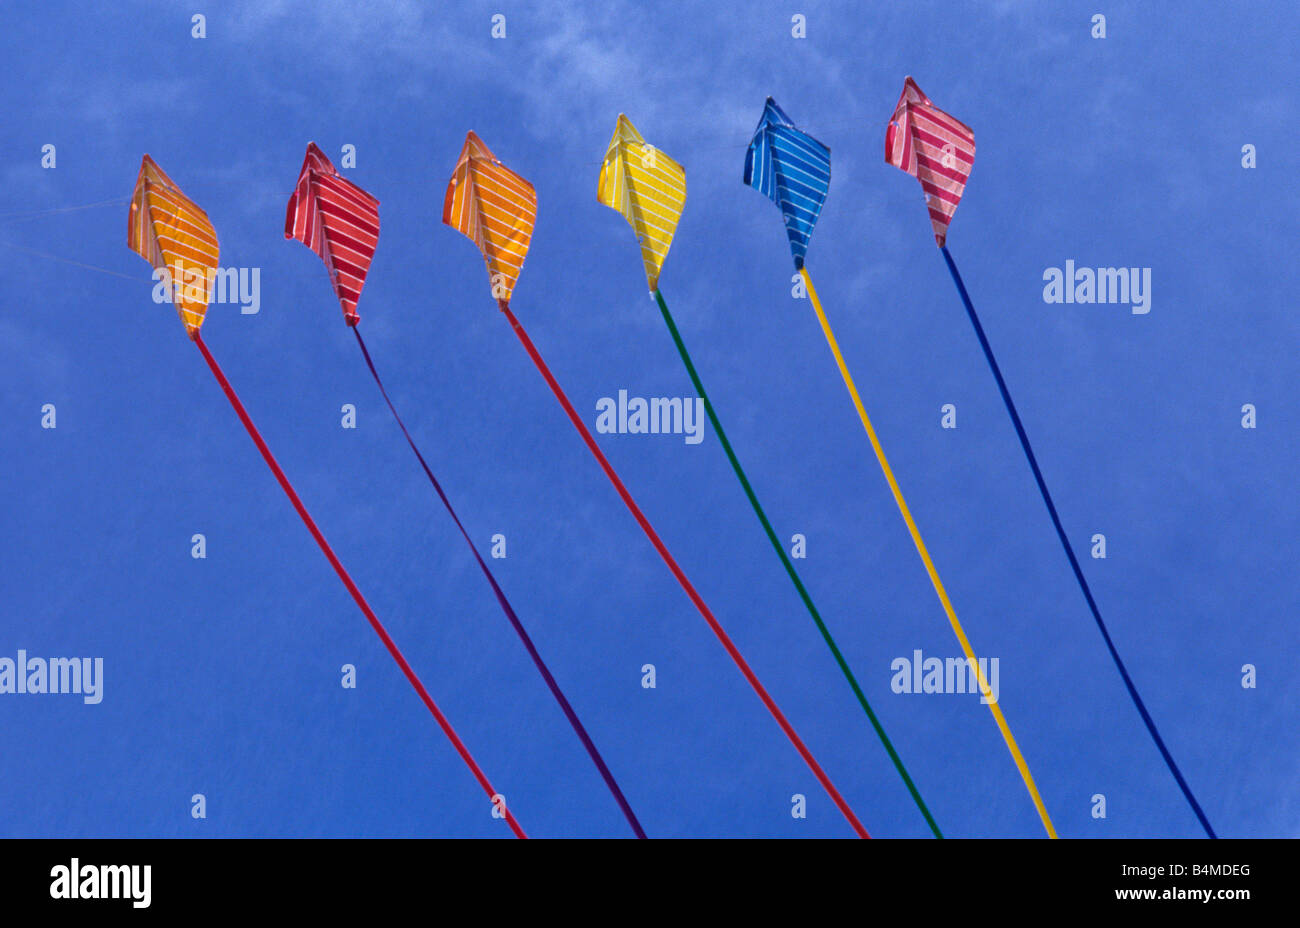 'Flying a Kite' - Stock Image